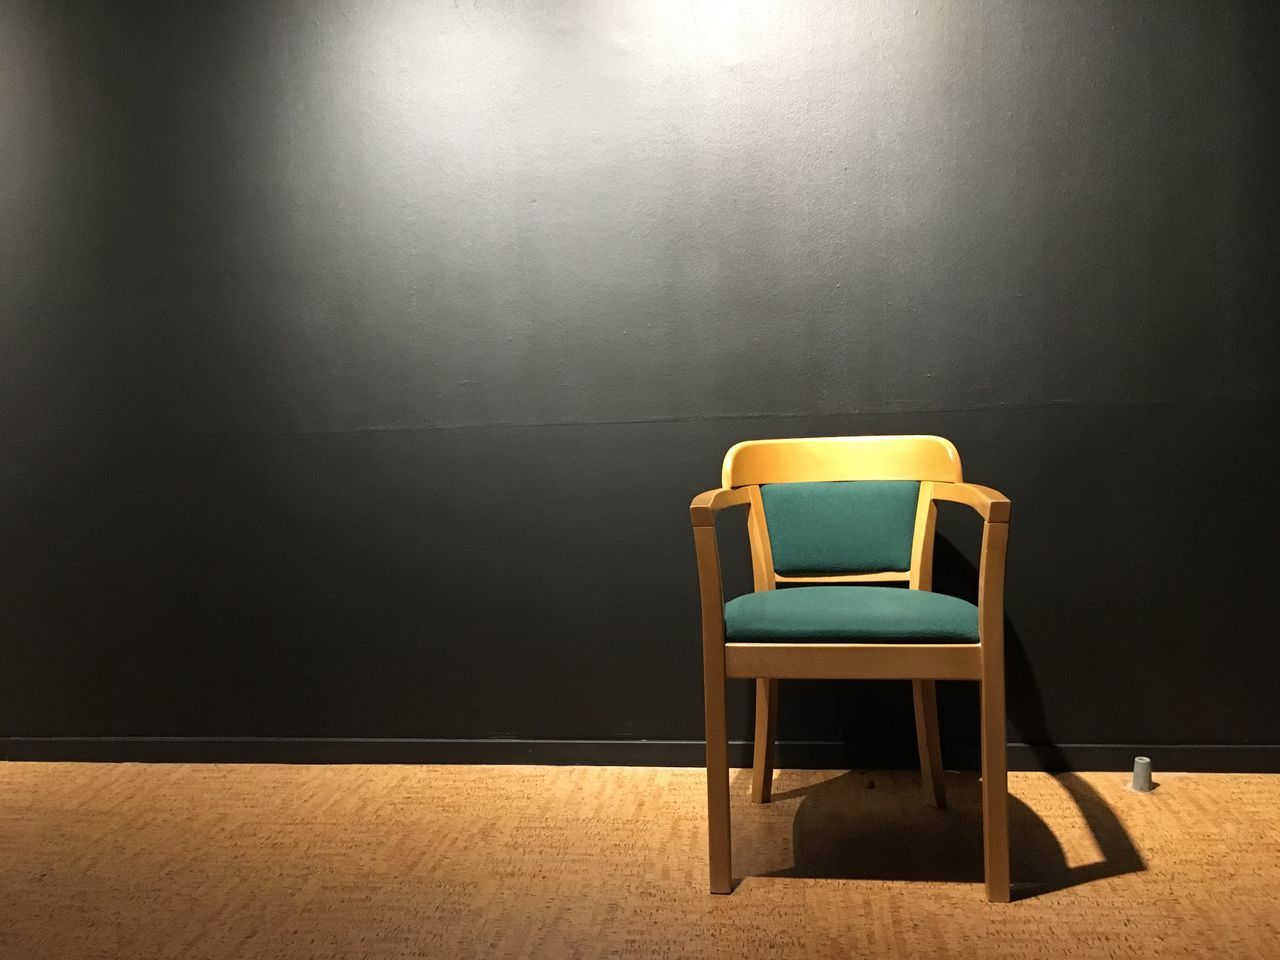 The Wainting Room Empty Empty Places Empty Chair Empty Space Empty Chairs ©Liselottewajstedt Empty Room Empty Spaces Empty Rooms